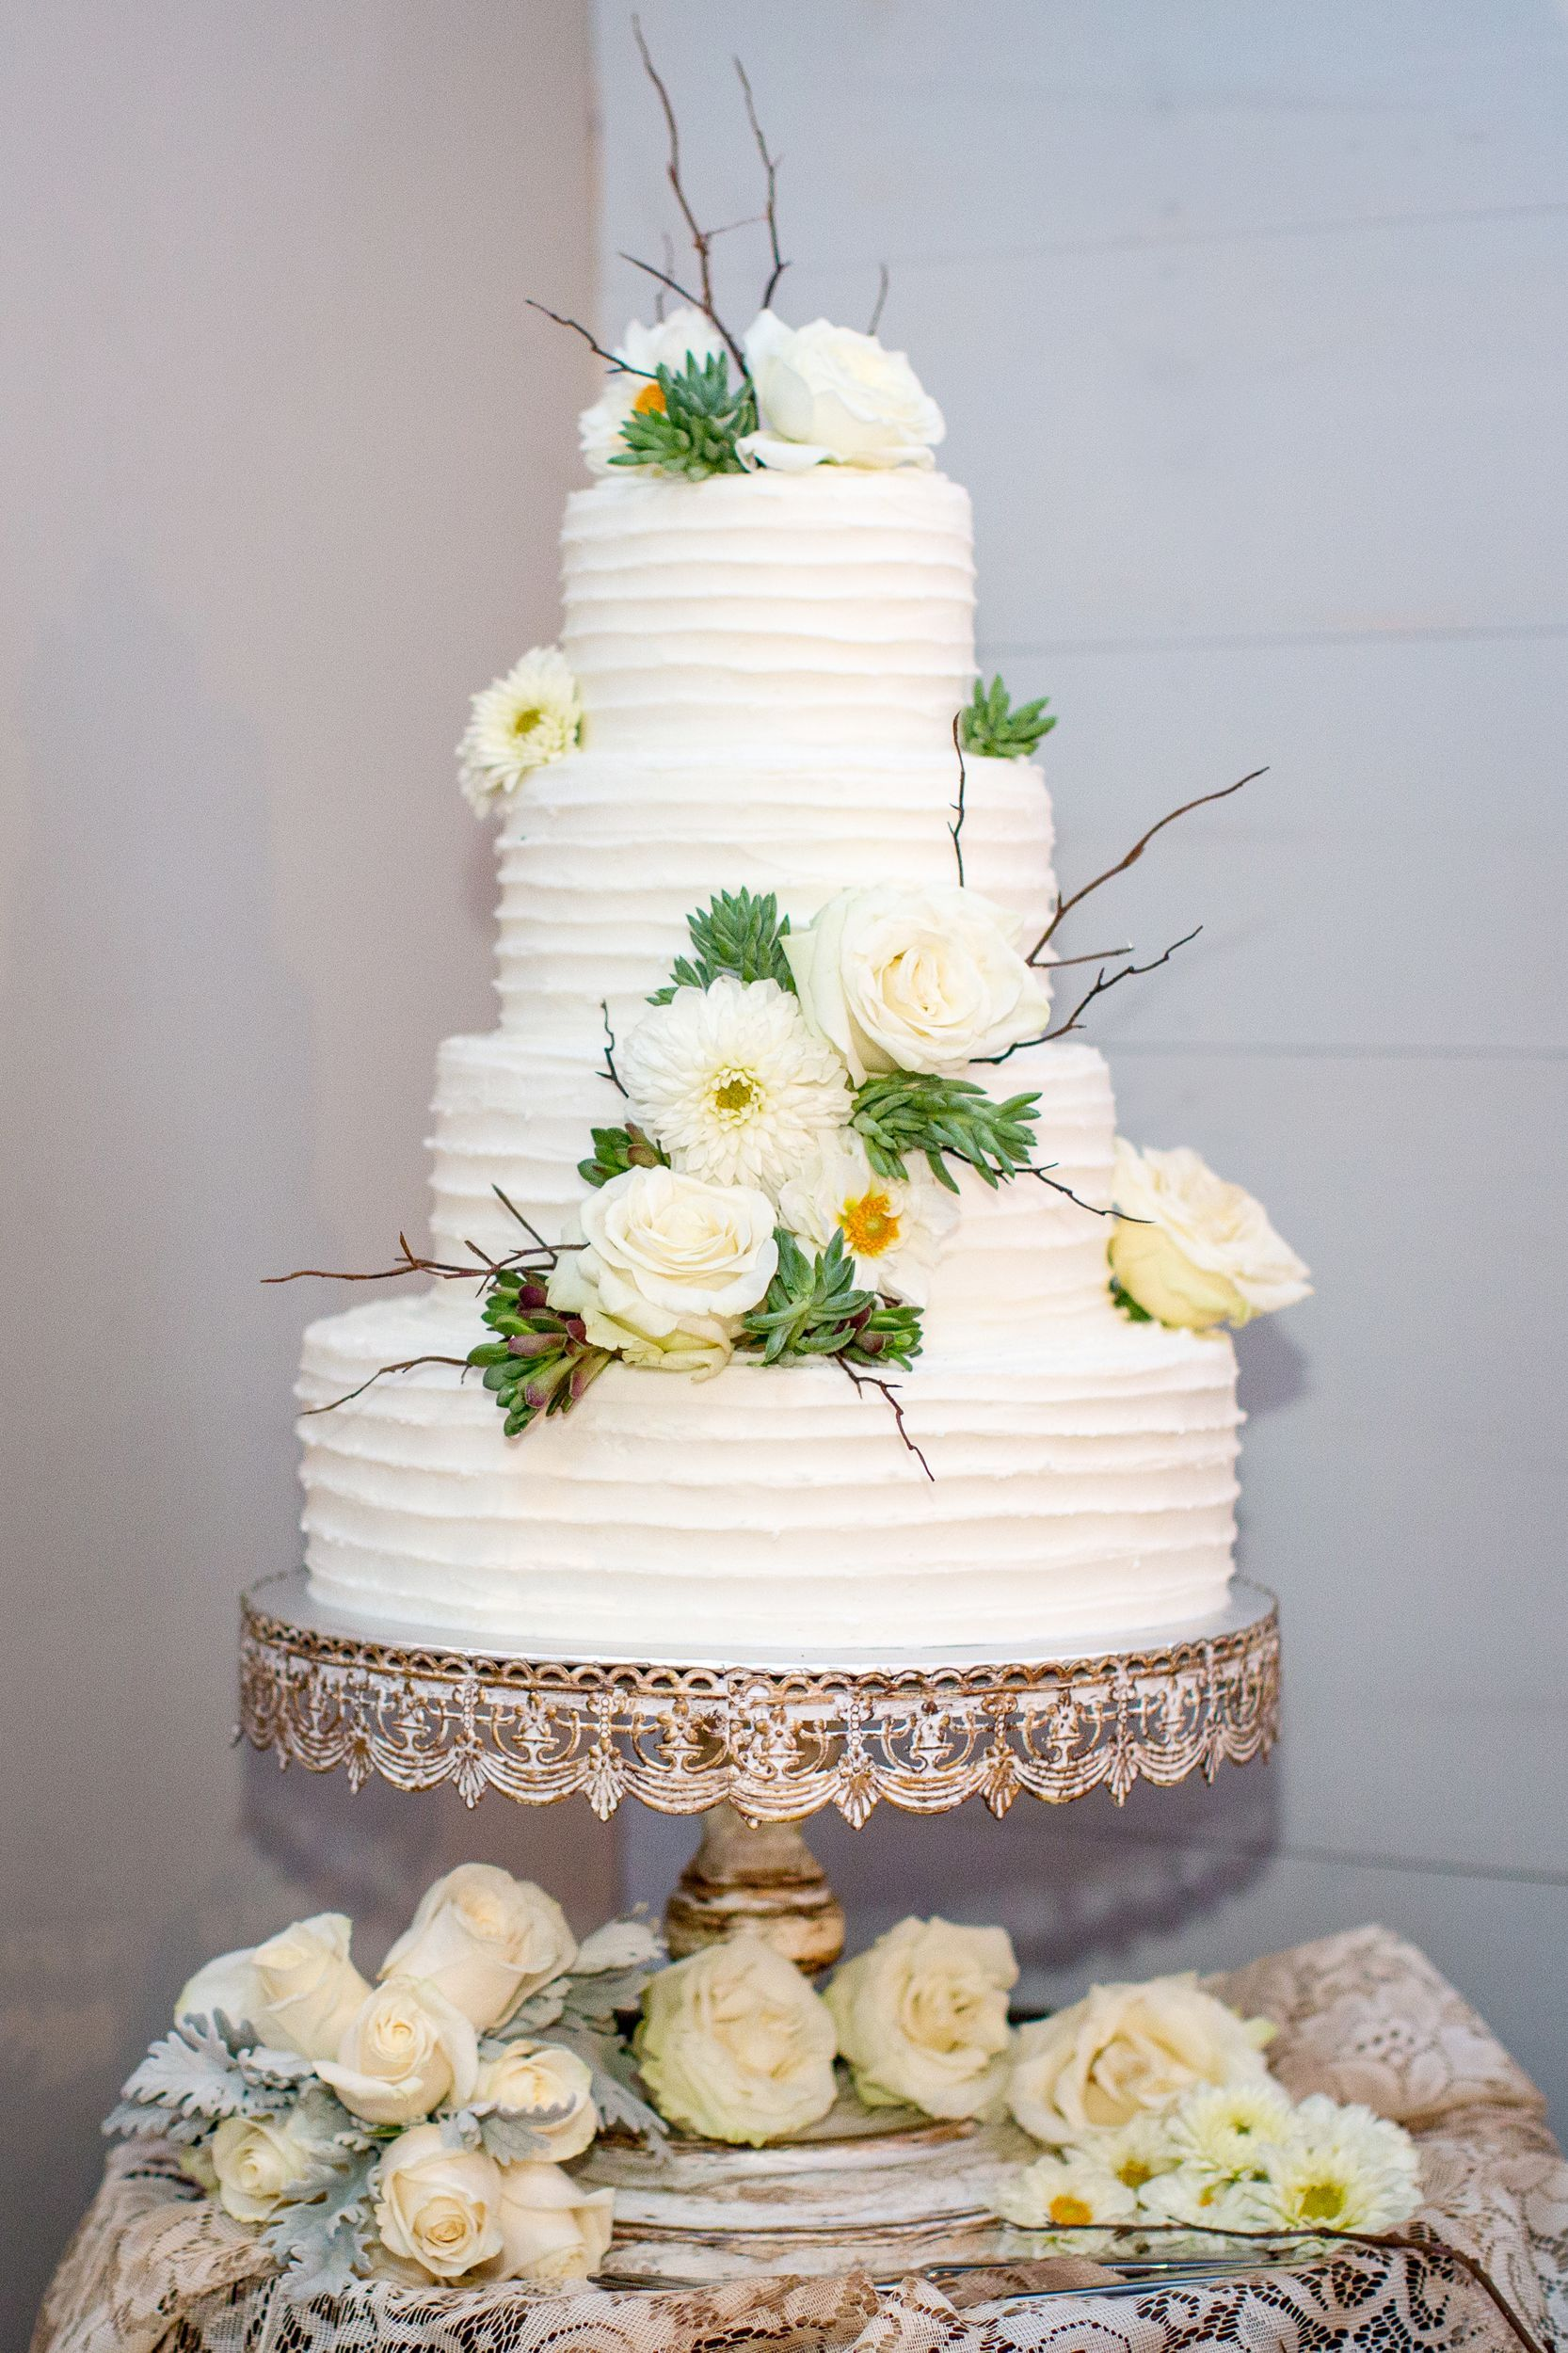 Ivory Wedding Cake with Roses and Daisies Rustic wedding